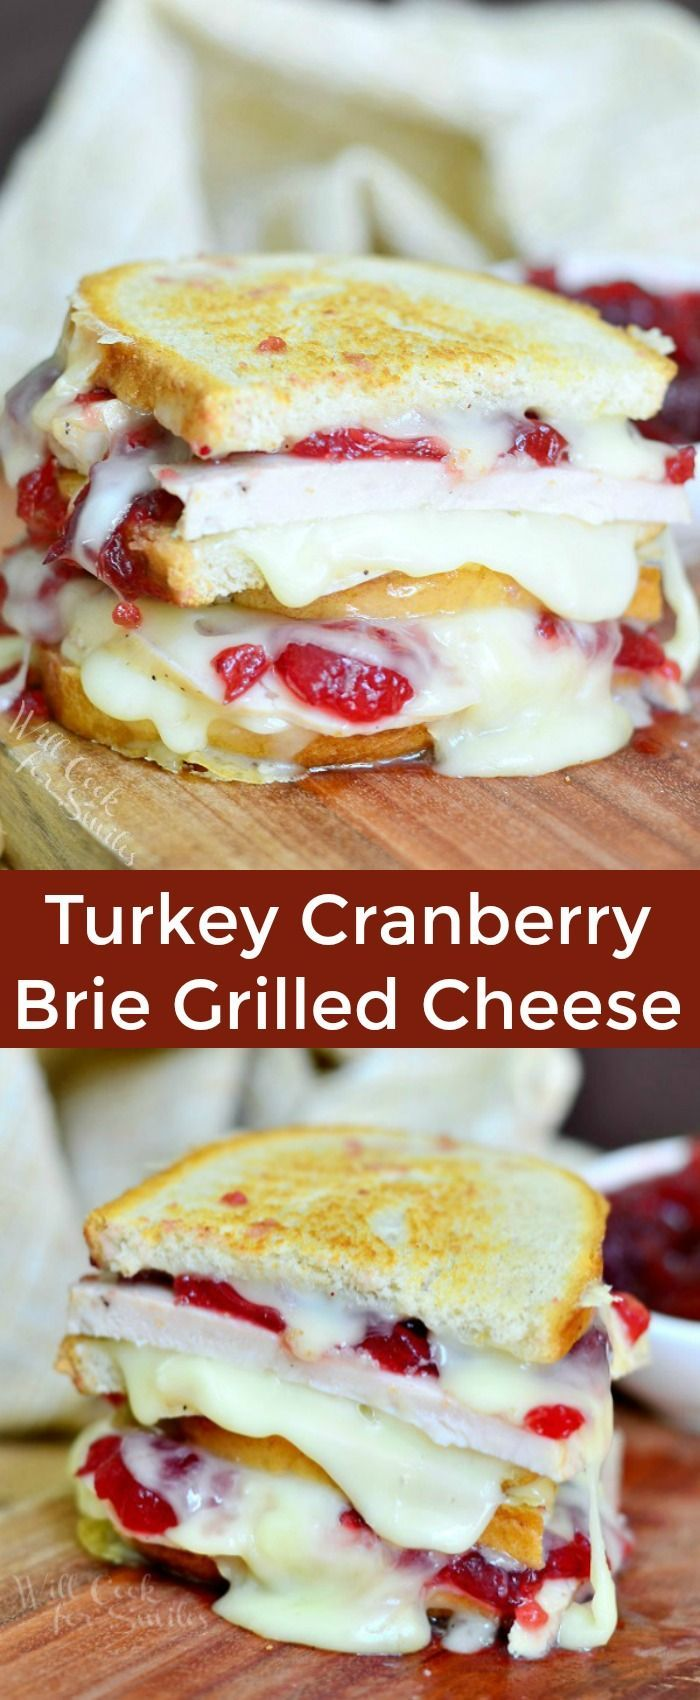 Turkey Cranberry Brie Grilled Cheese. Amazing recipe to use up those Thanksgiving leftovers after the holiday dinner. Gooey grilled cheese recipe made with turkey breast, smooth melted brie cheese and cranberry sauce. #turkey #grilledcheese #sandwich #leftovers #brie #turkeyrecipes